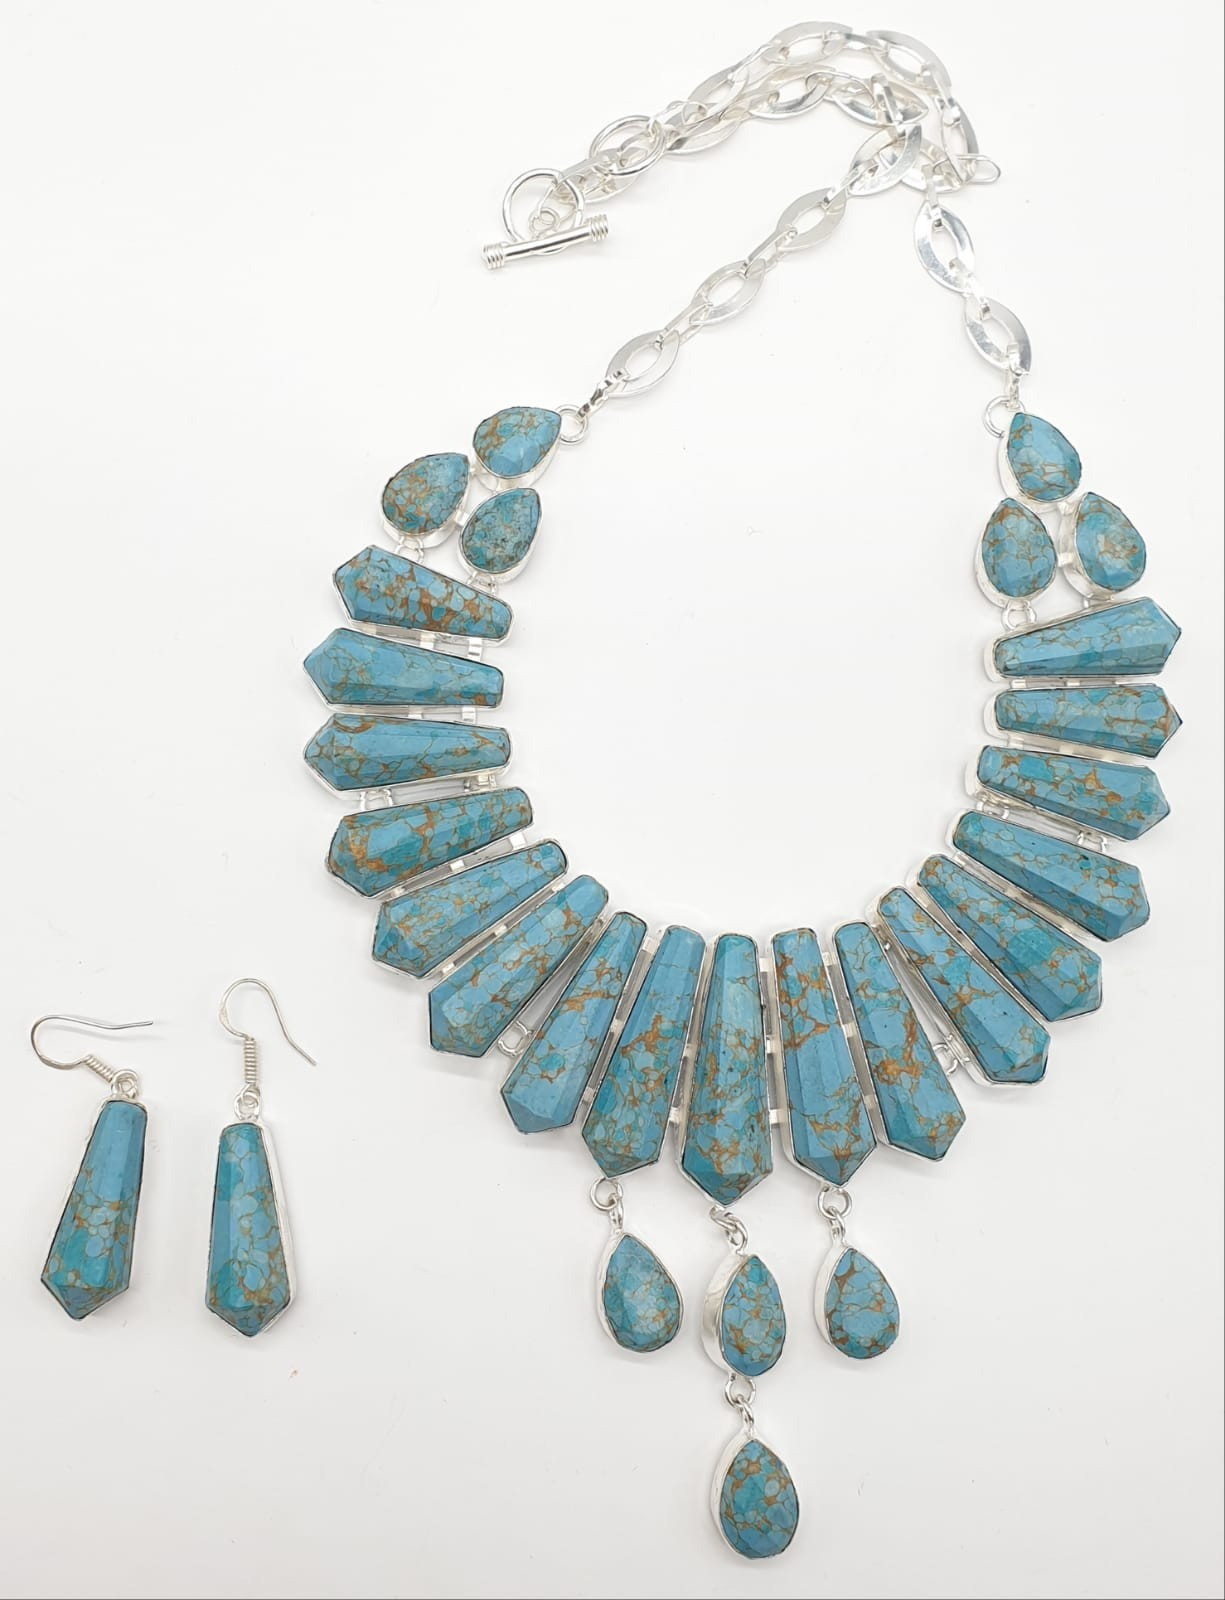 A Pharaonic style necklace and earrings set with light brown-gold veined turquoise obelisks and